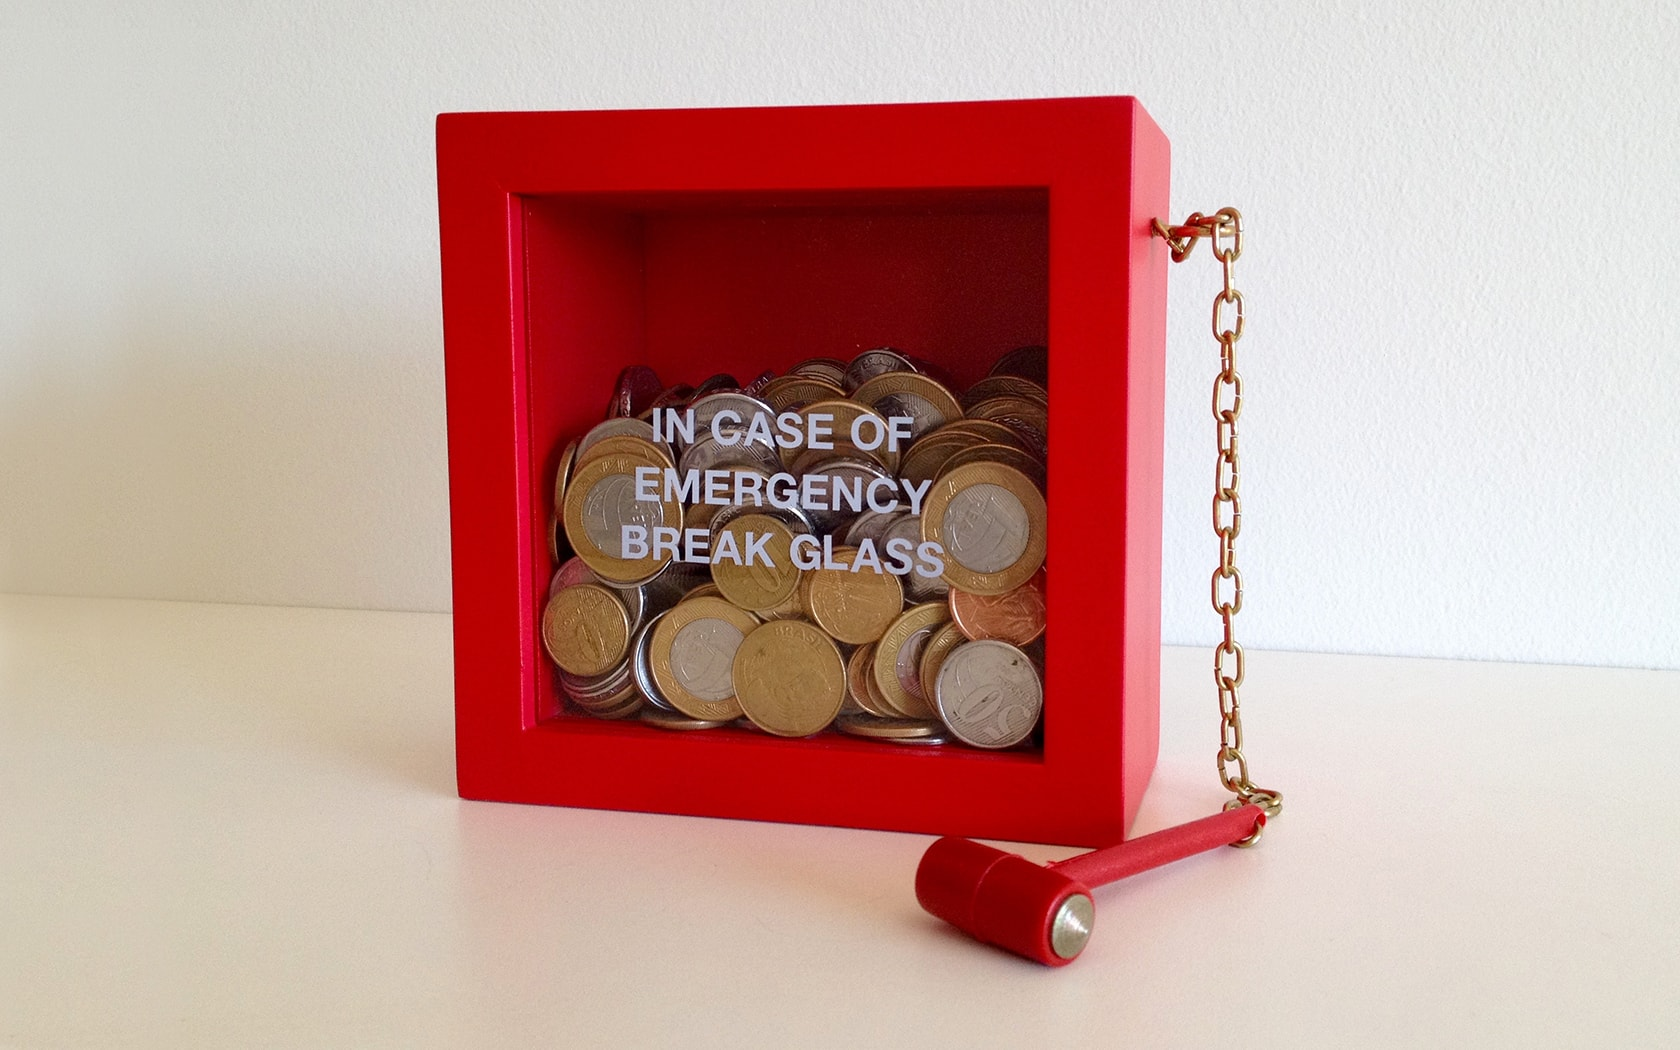 Cofrinho - In Case of Emergency